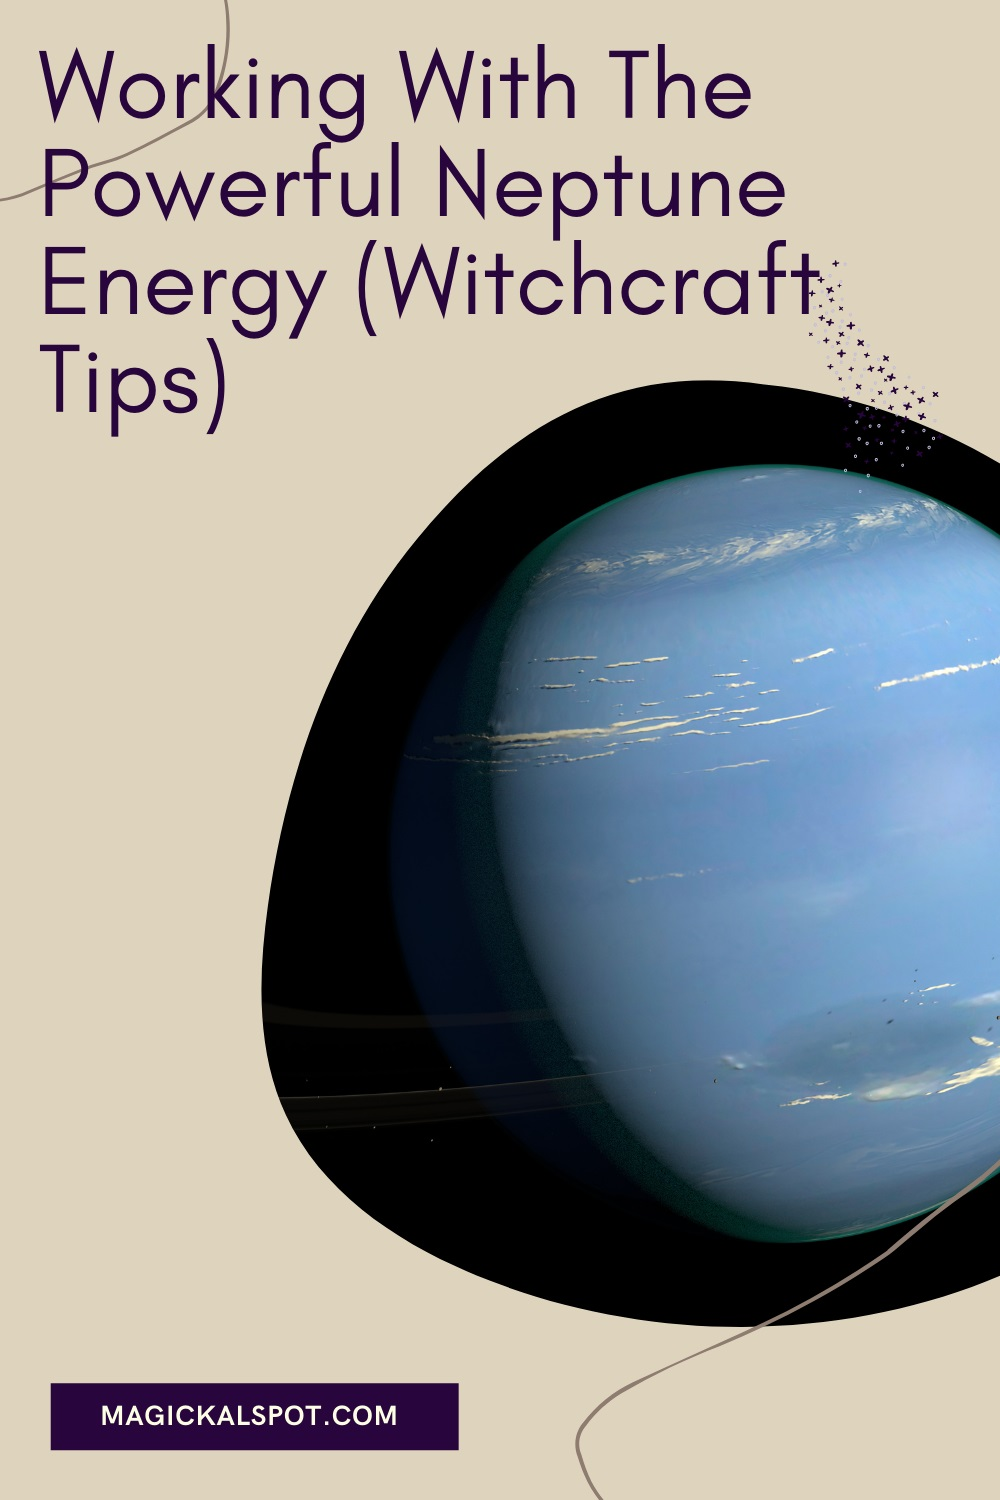 Working With The Powerful Neptune Energy by Magickal Spot